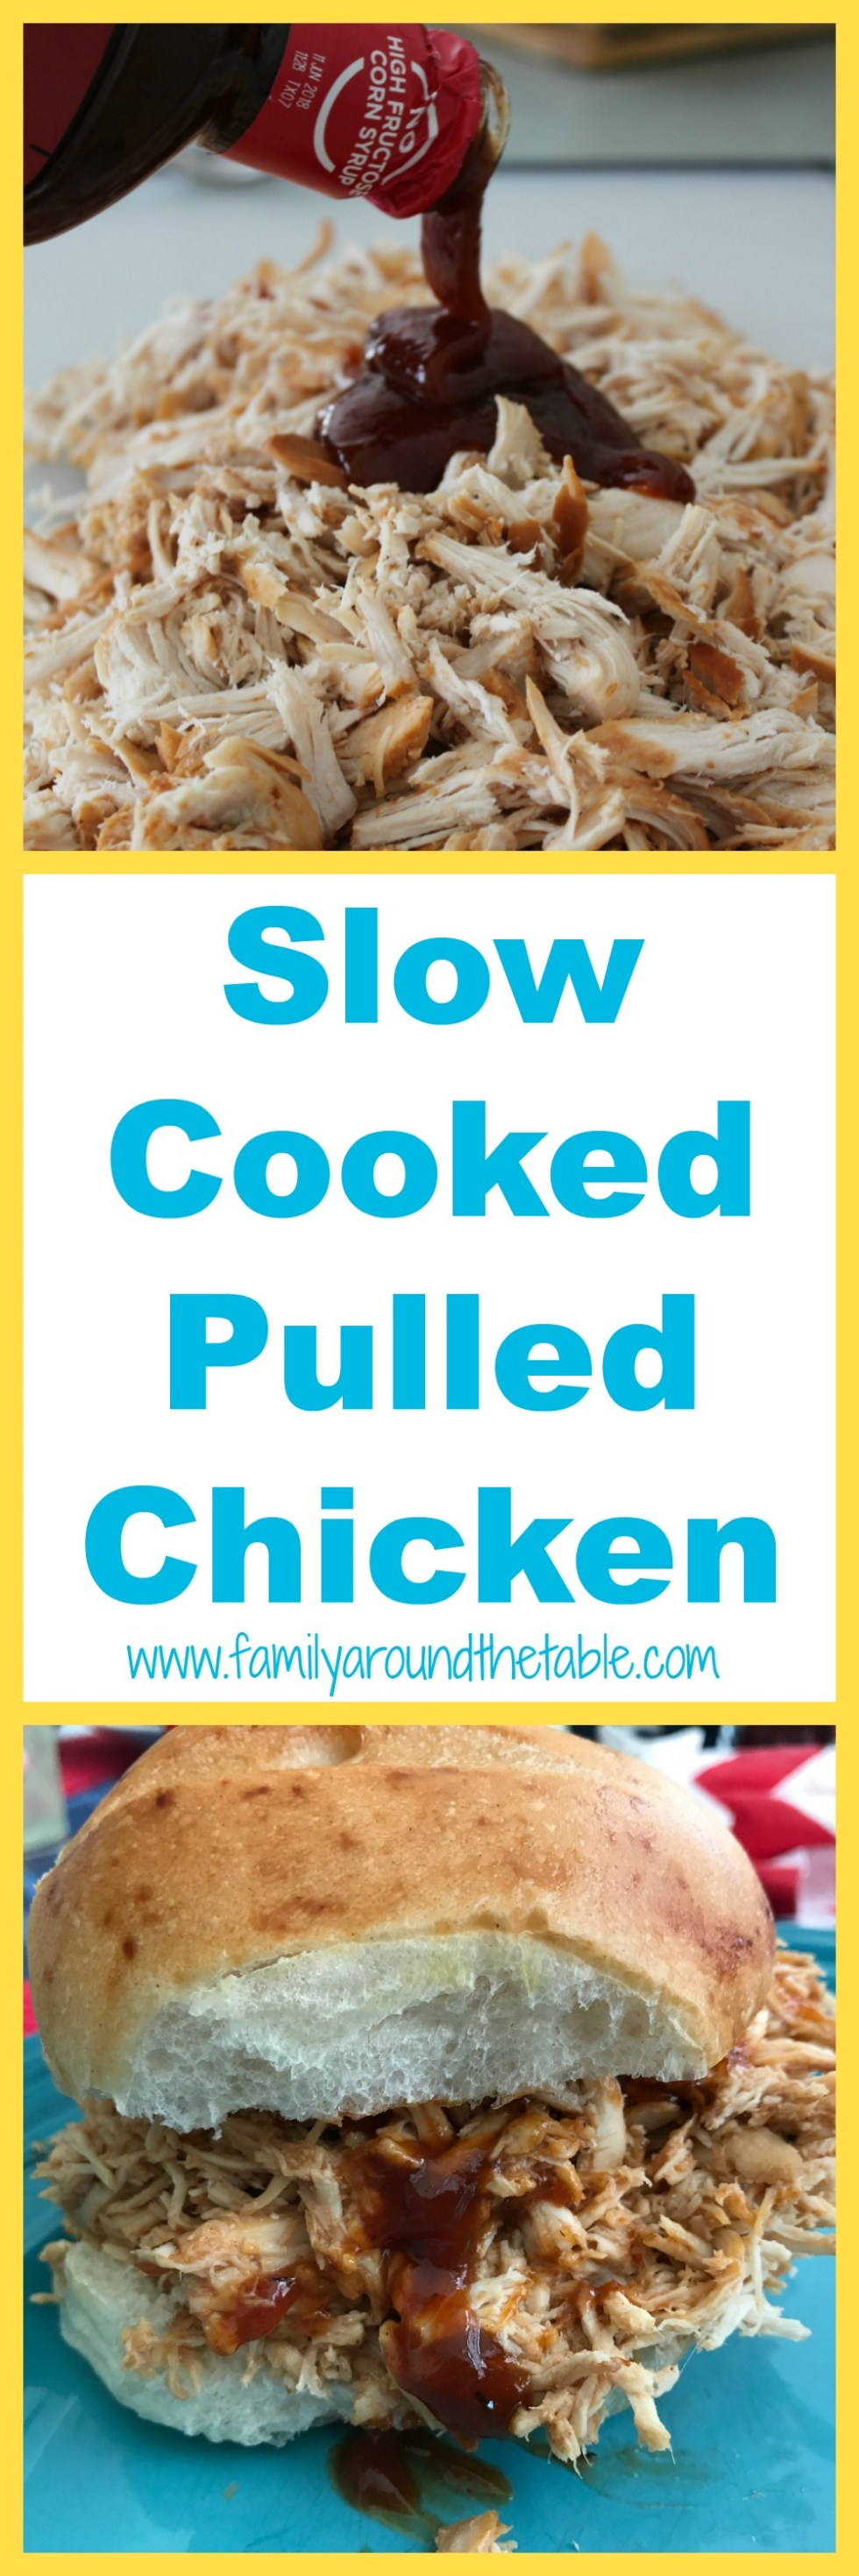 Use slow cooked pulled chicken for bbq sandwiches, tacos, fajitas, quesadillas or chicken salad.